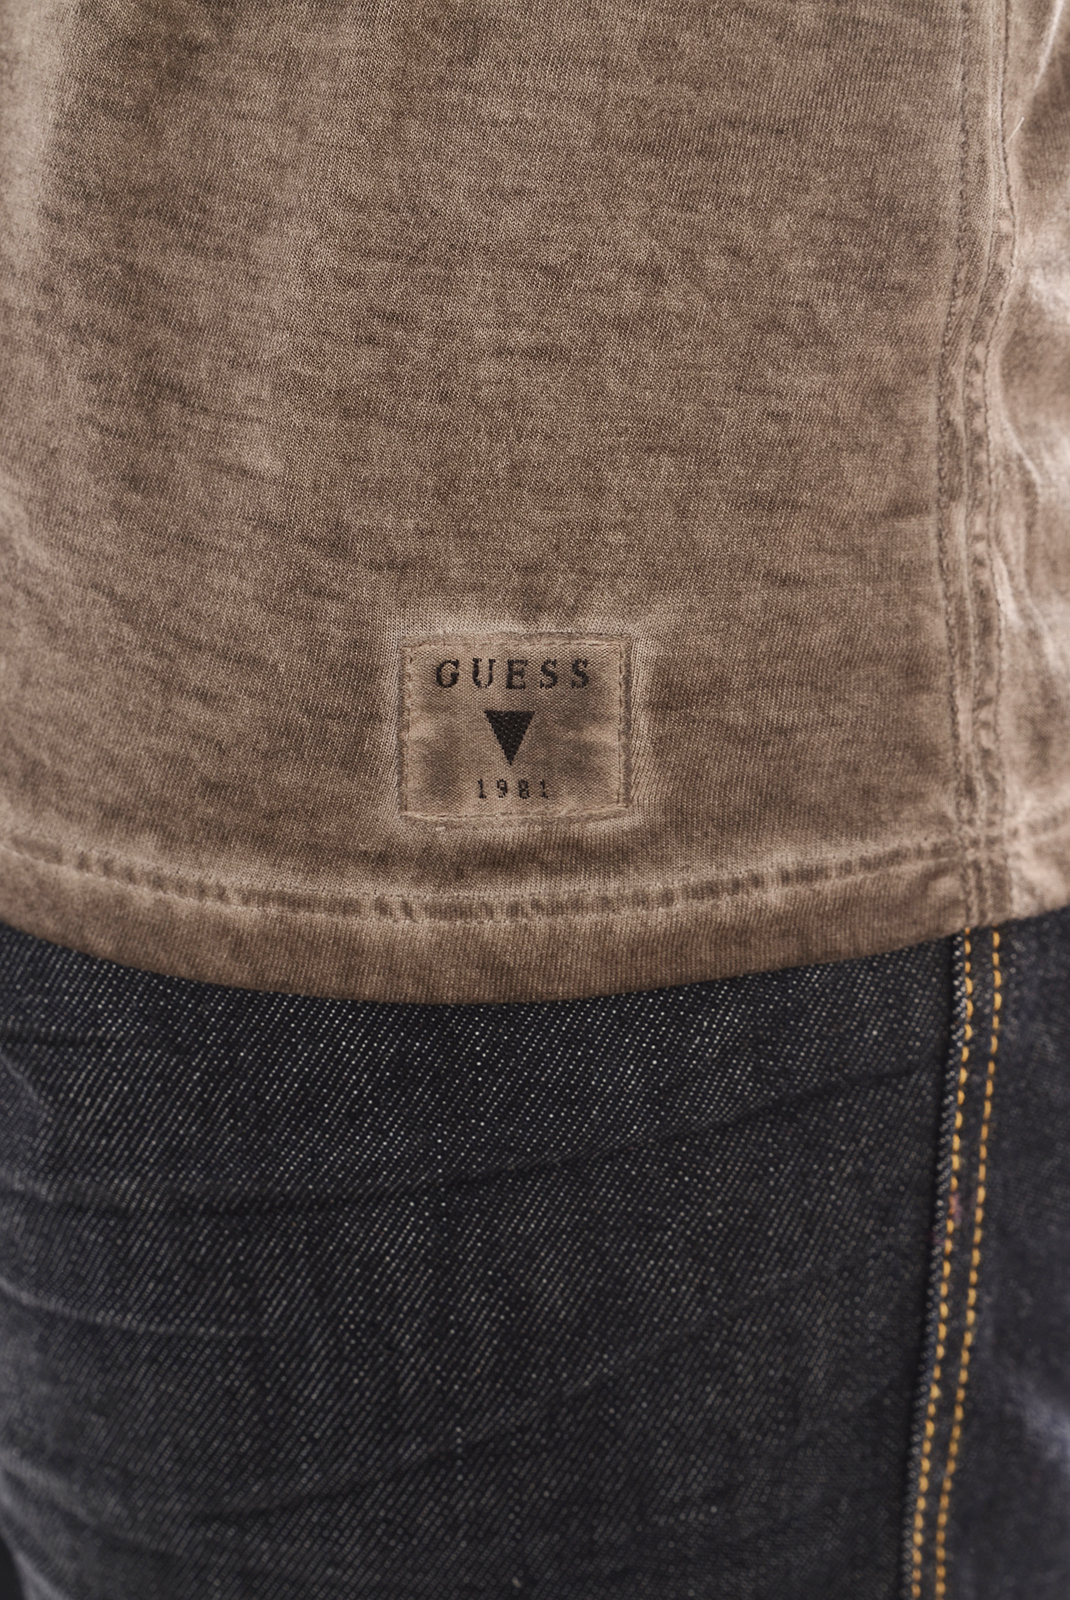 Tee-shirts  Guess jeans M44I30I5Y00 D144 TAUPE